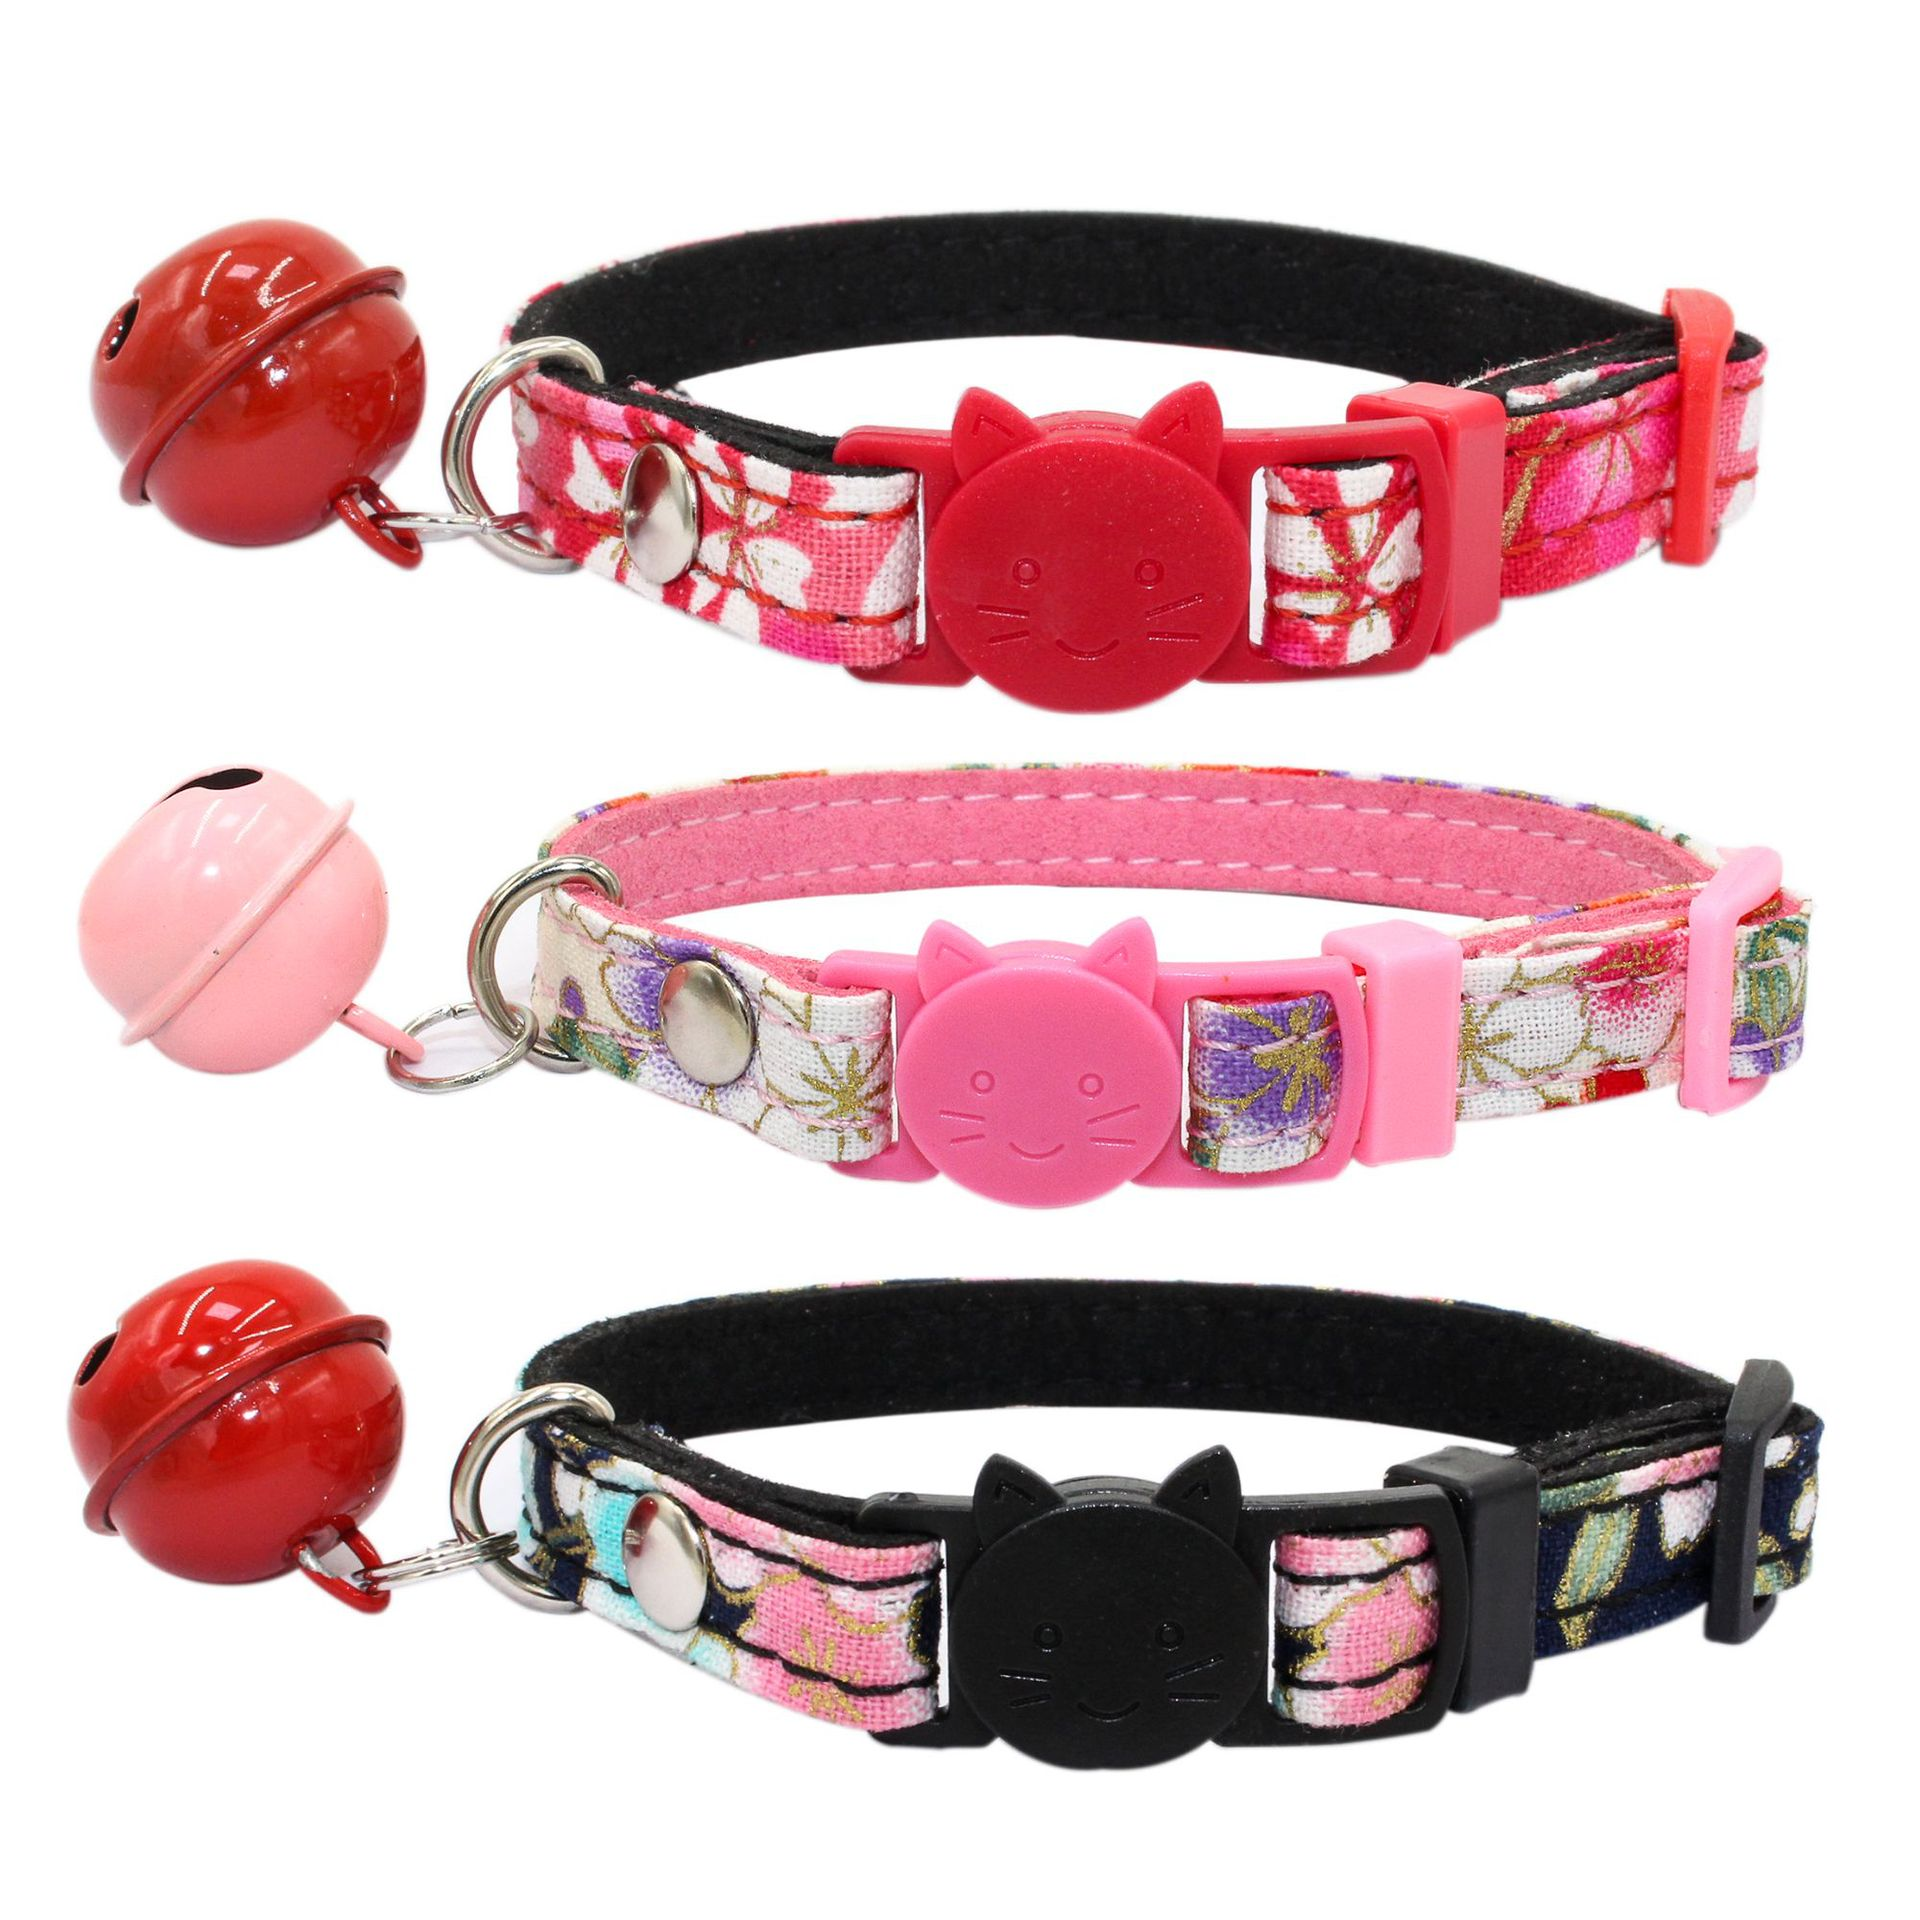 Cute Cat Head Safety Buckle Japanese Style Cat Collar With Bell Small Dog Chain Printed Pet Collar Hot